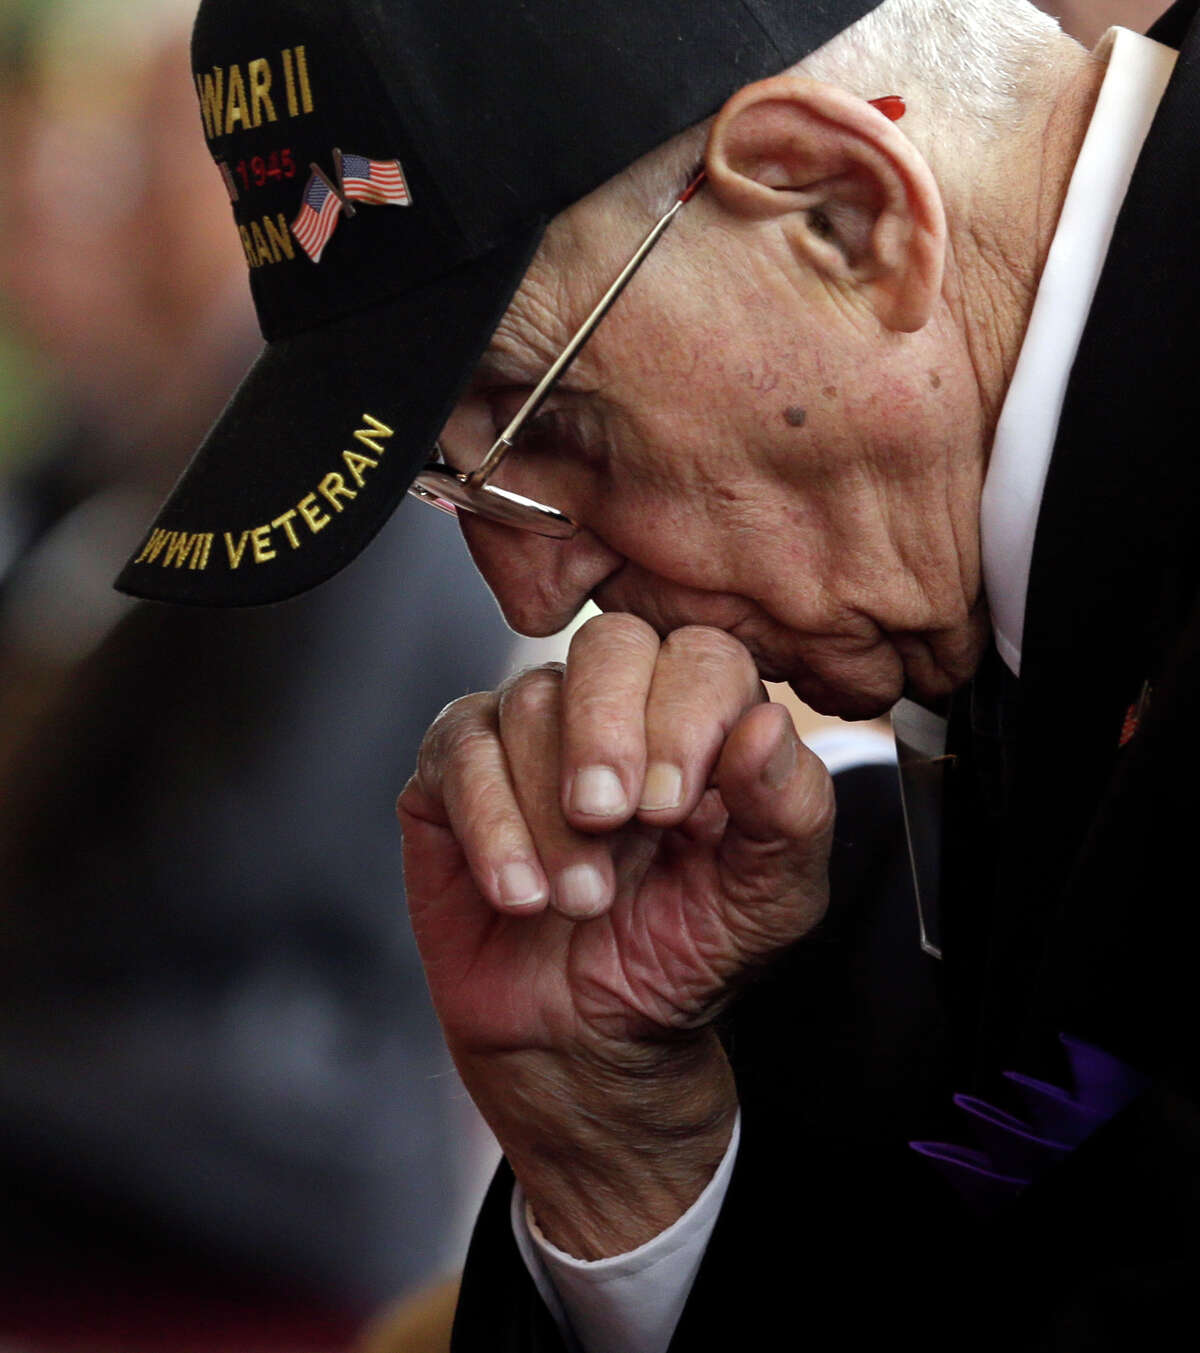 World War II veteran Michael Sgaglione of Middle Island, N.Y., listens to a speaker before receiving the insignia of the French Legion of Honor during a ceremony at the U.S. Military Academy on Friday, May 9, 2014, in West Point, N.Y. Thirty-four U.S. veterans were honored 70 years after of the D-Day landings. (AP Photo/Mike Groll) ORG XMIT: NYMG103